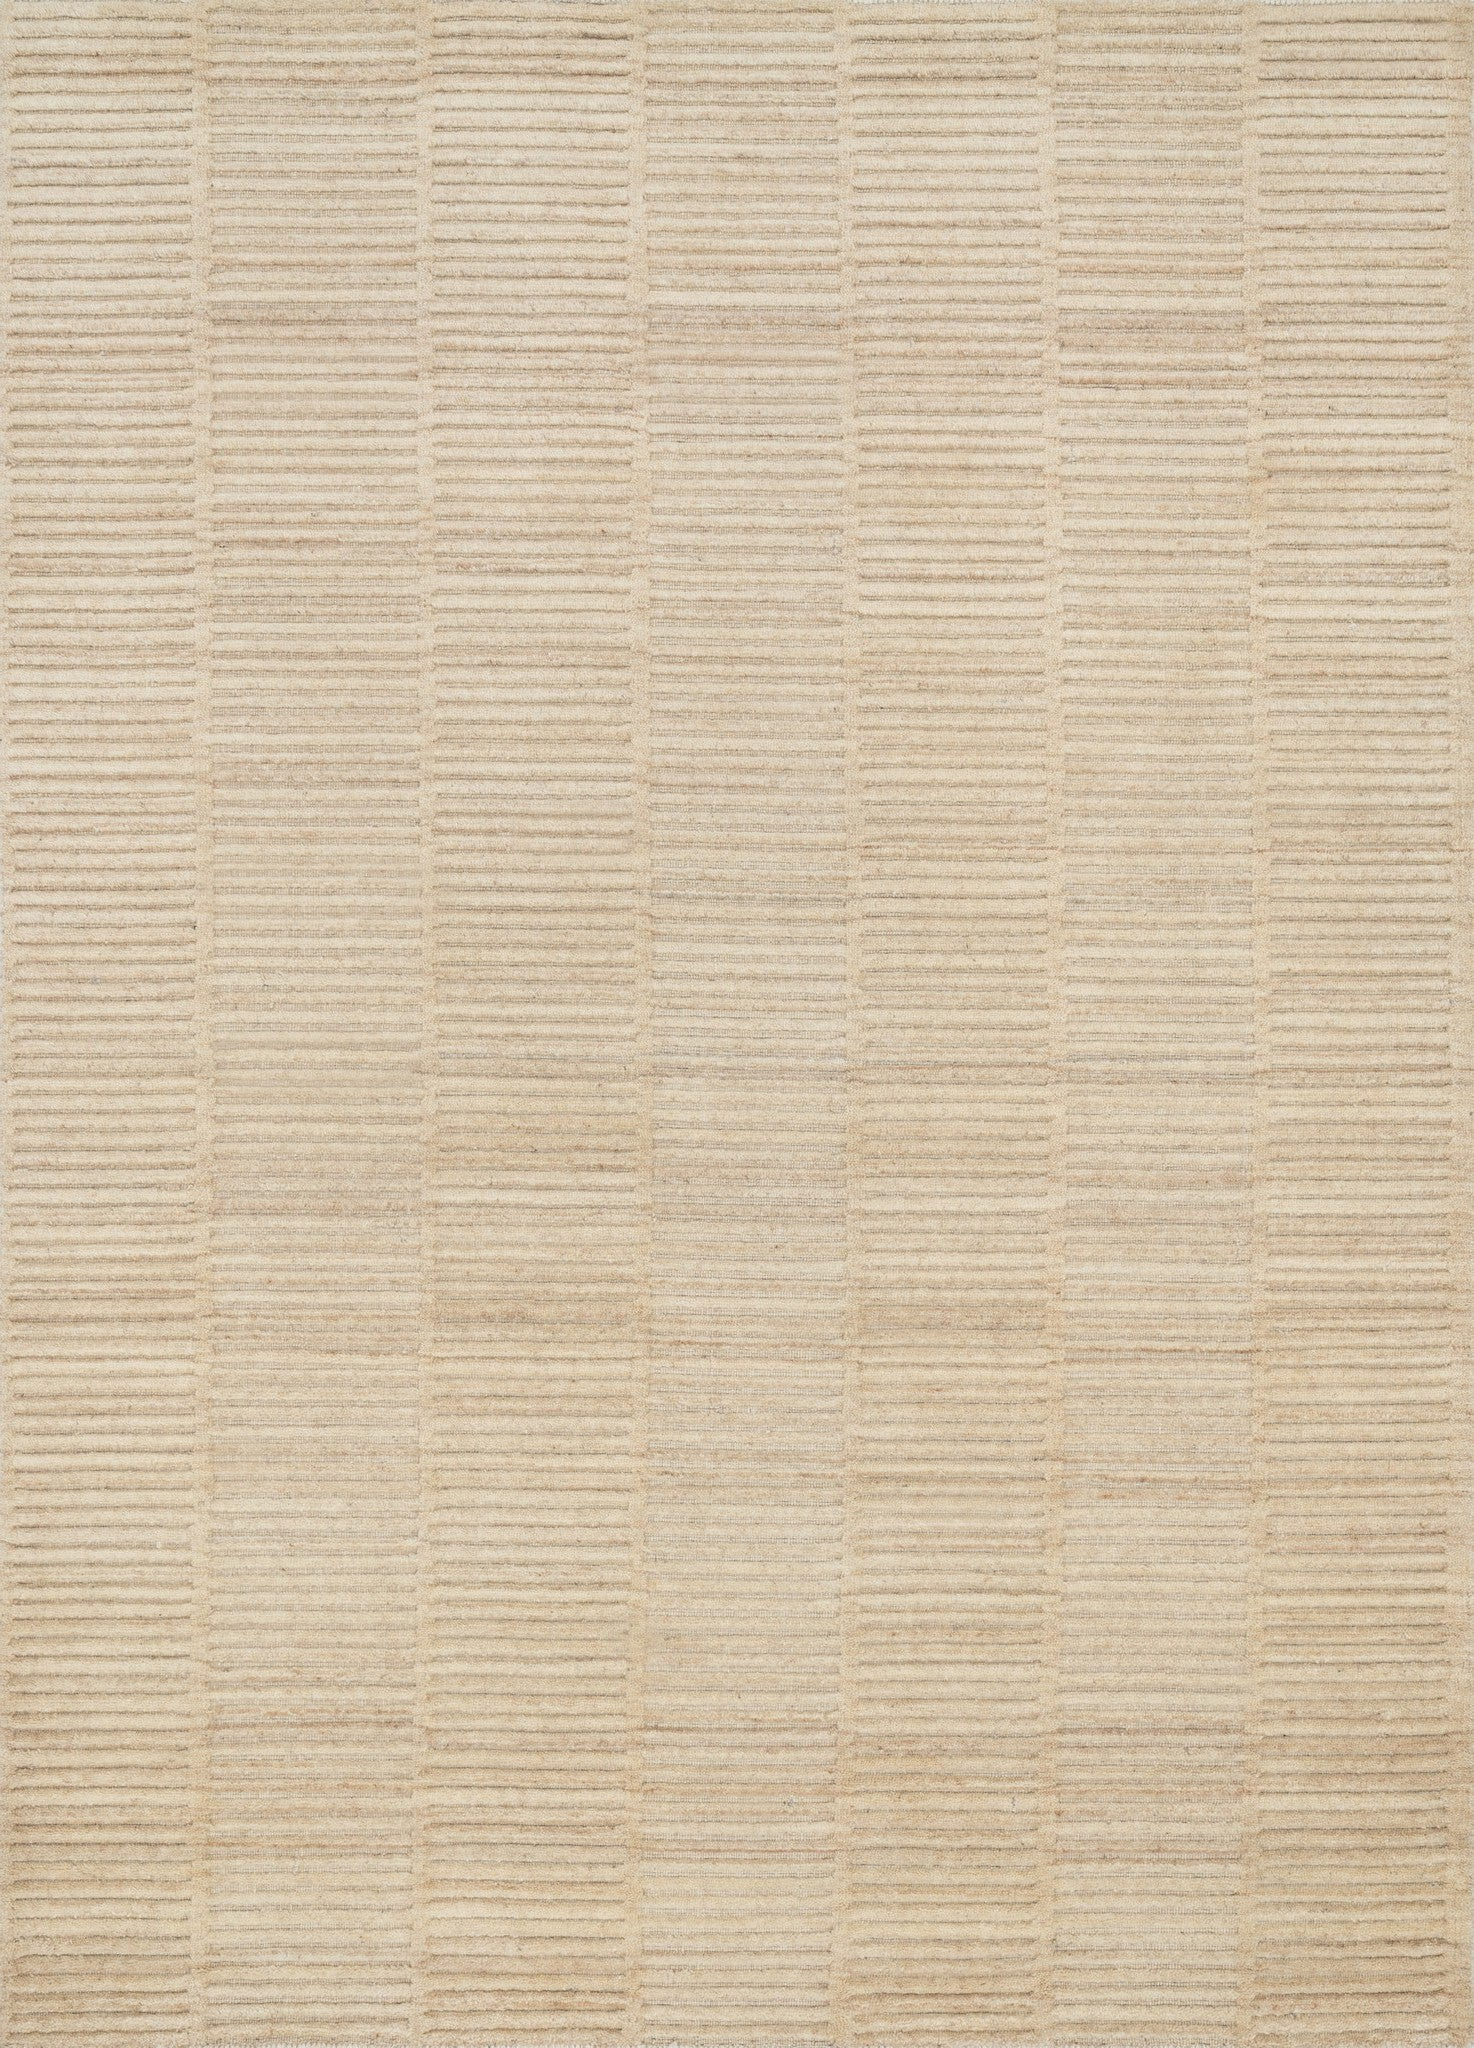 Loloi Hadley/Hemingway HD-01 Natural Area Rug main image